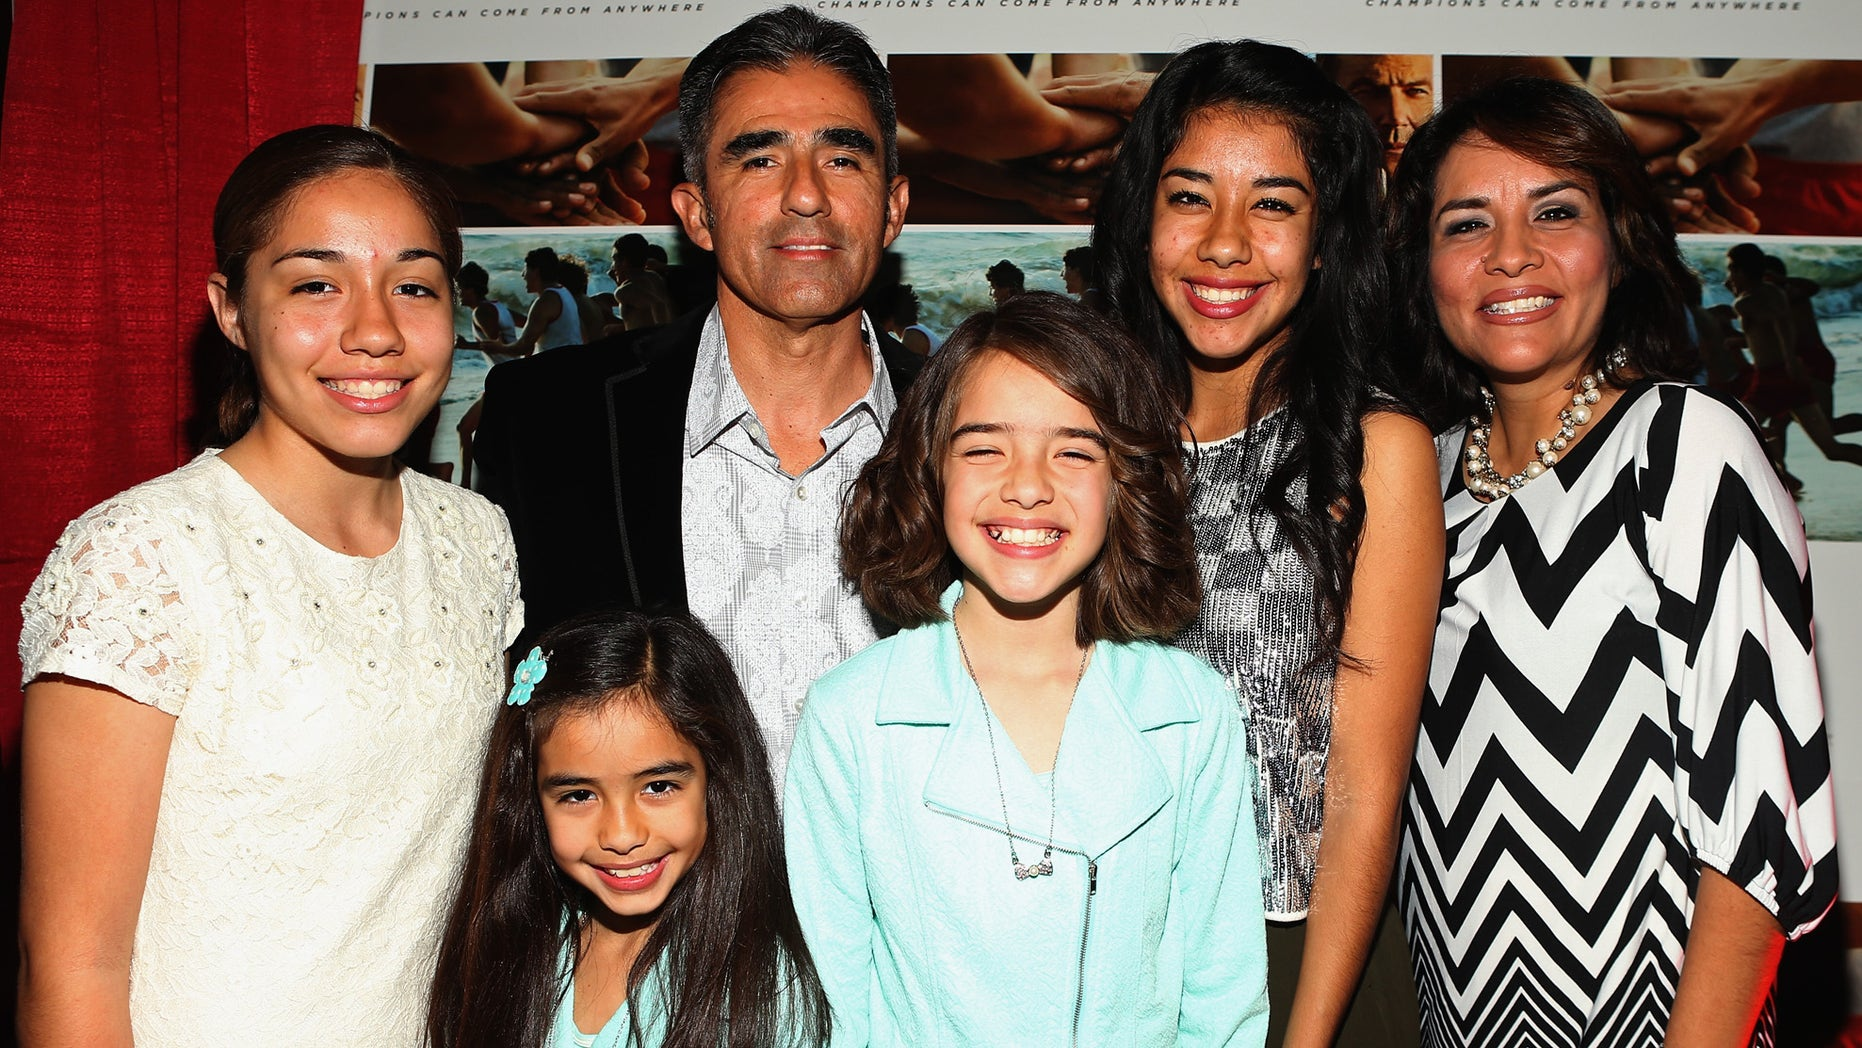 Runner David Diaz and guests attend a special screening of 'McFarland, USA' in Bakersfield, CA on Feb. 15th, 2015.